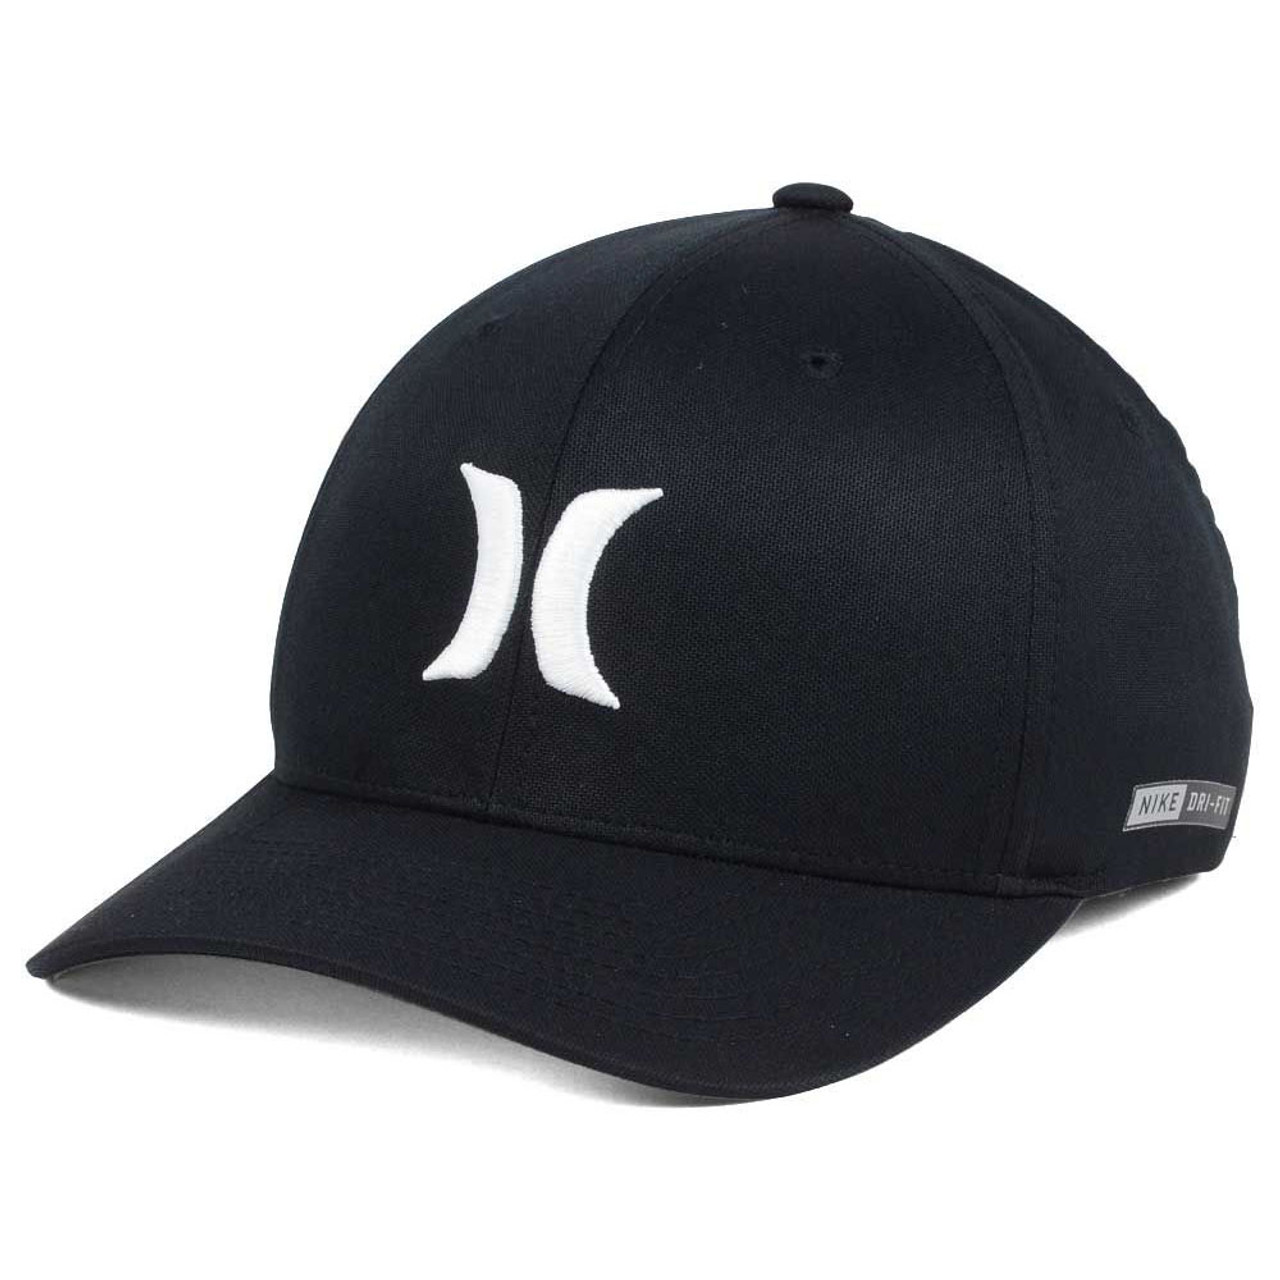 dd874cb9be896 Hurley Hat - Dri-Fit One and Only - Black White - Surf and Dirt